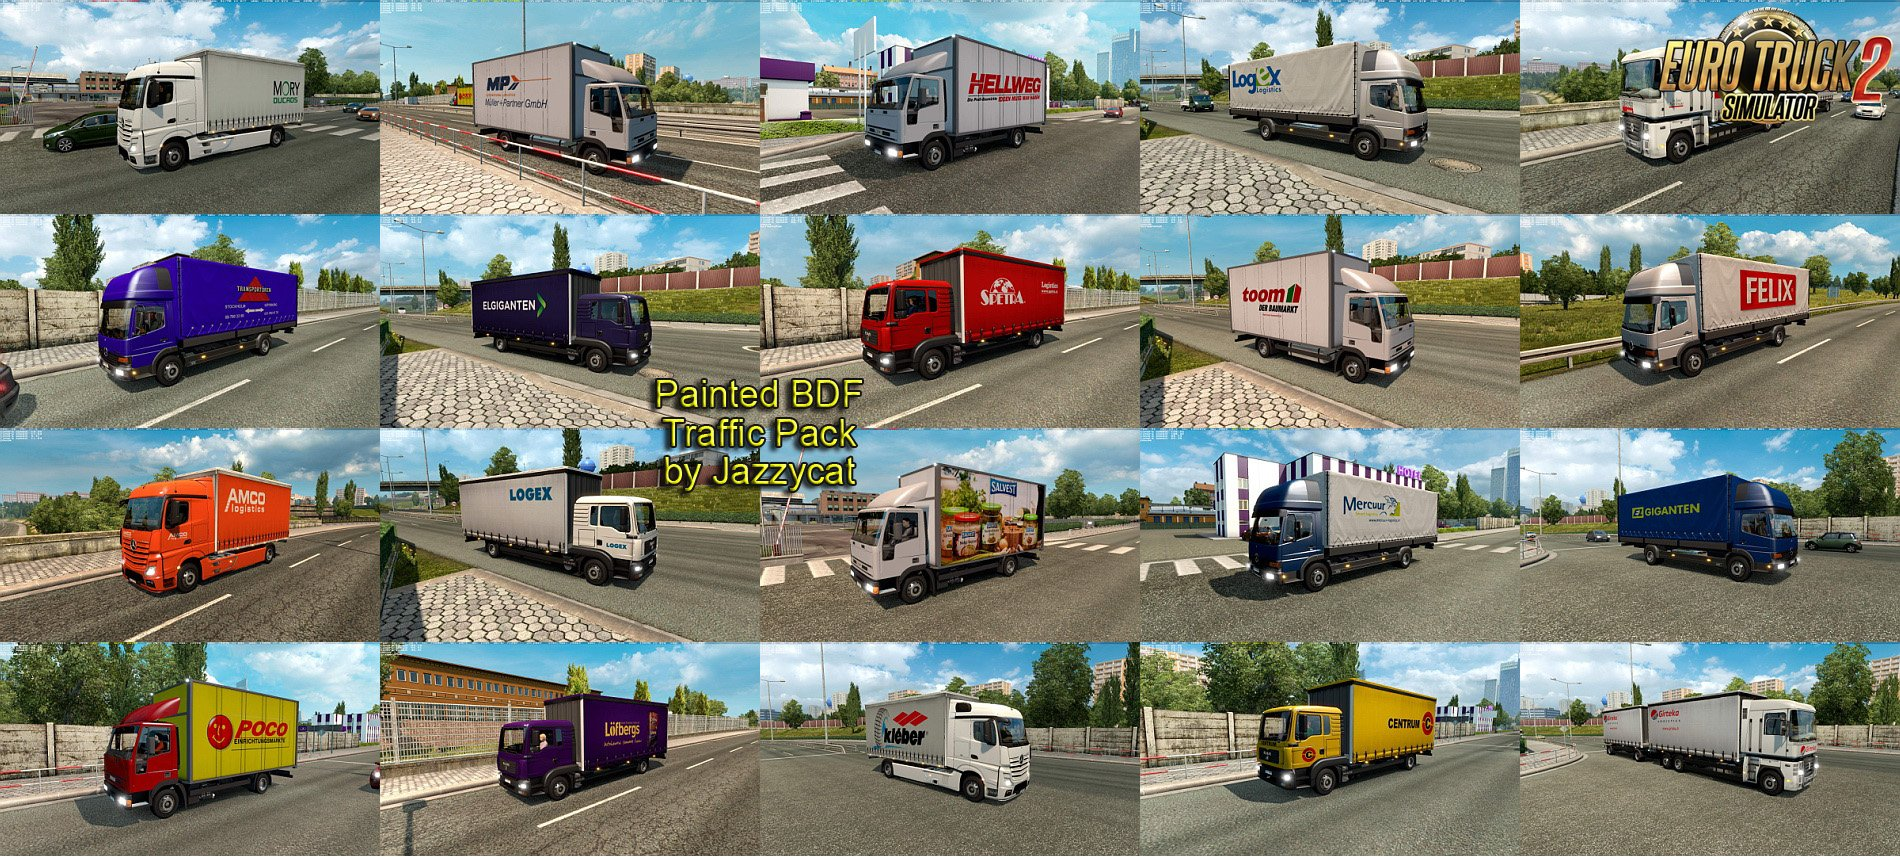 Painted BDF Traffic Pack v1.6 by Jazzycat